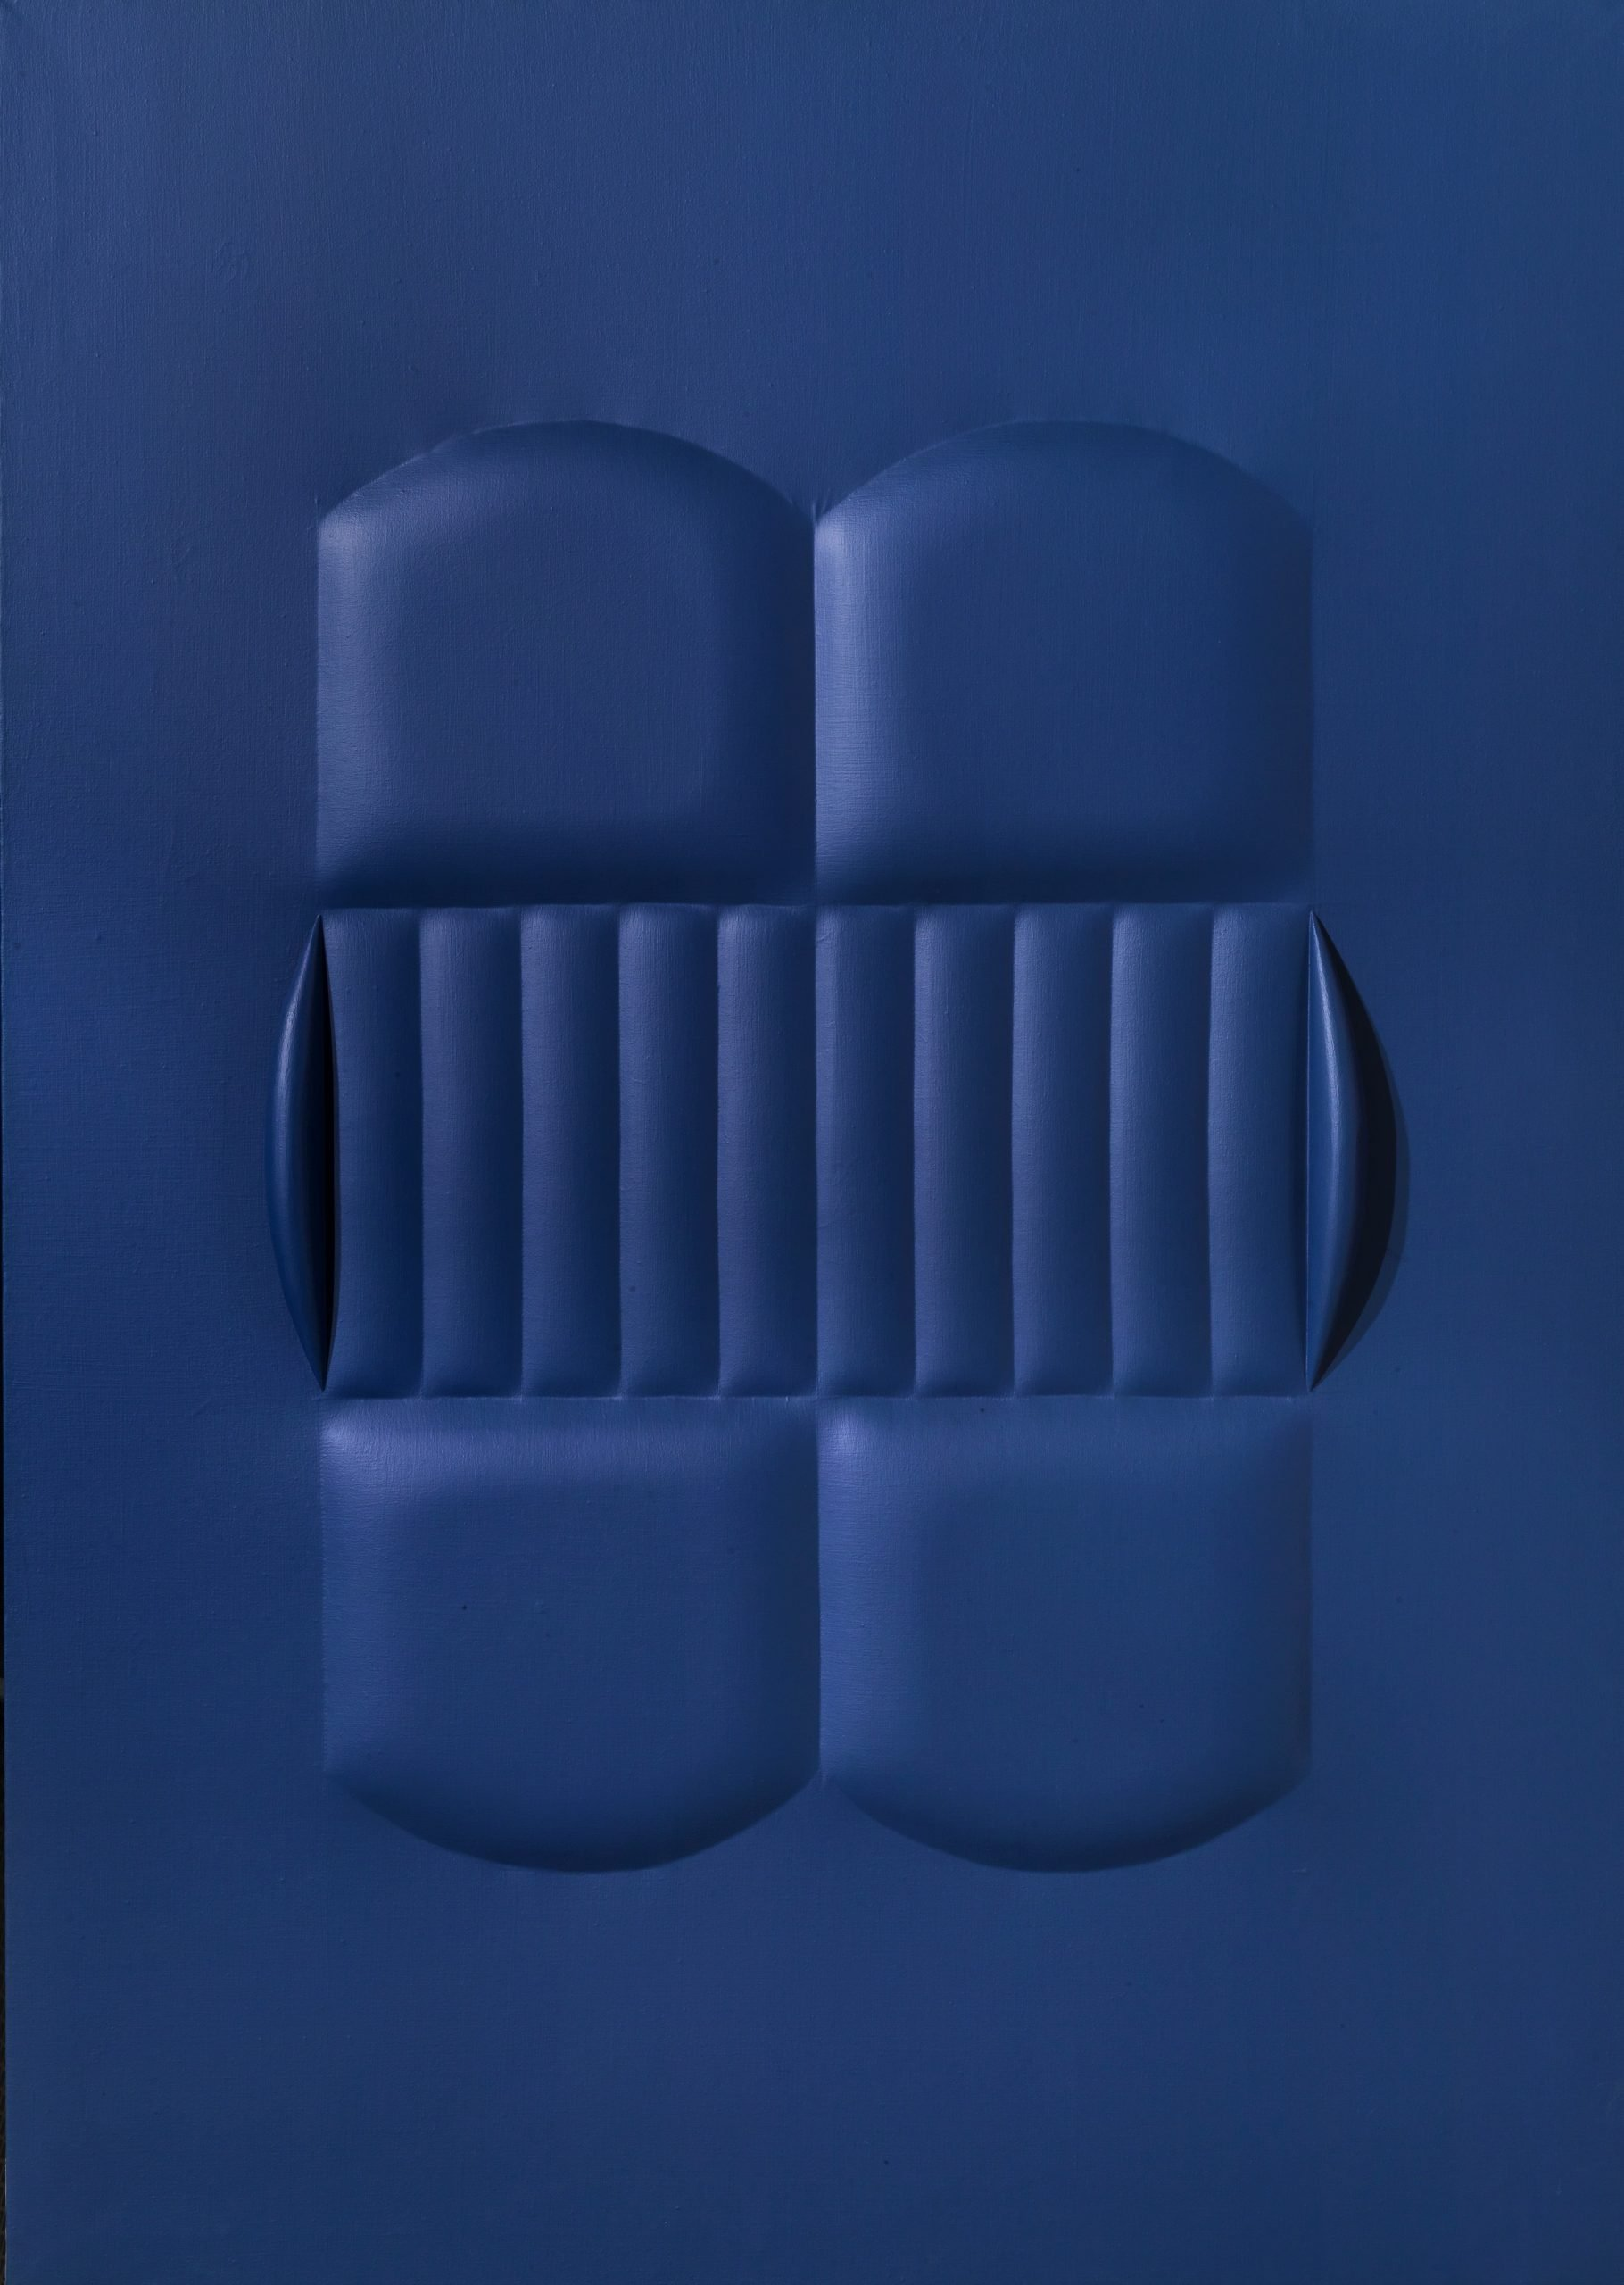 Agostino Bonalumi, Blu, 1964, vinyl-based tempera on shaped canvas, 140x100 cm